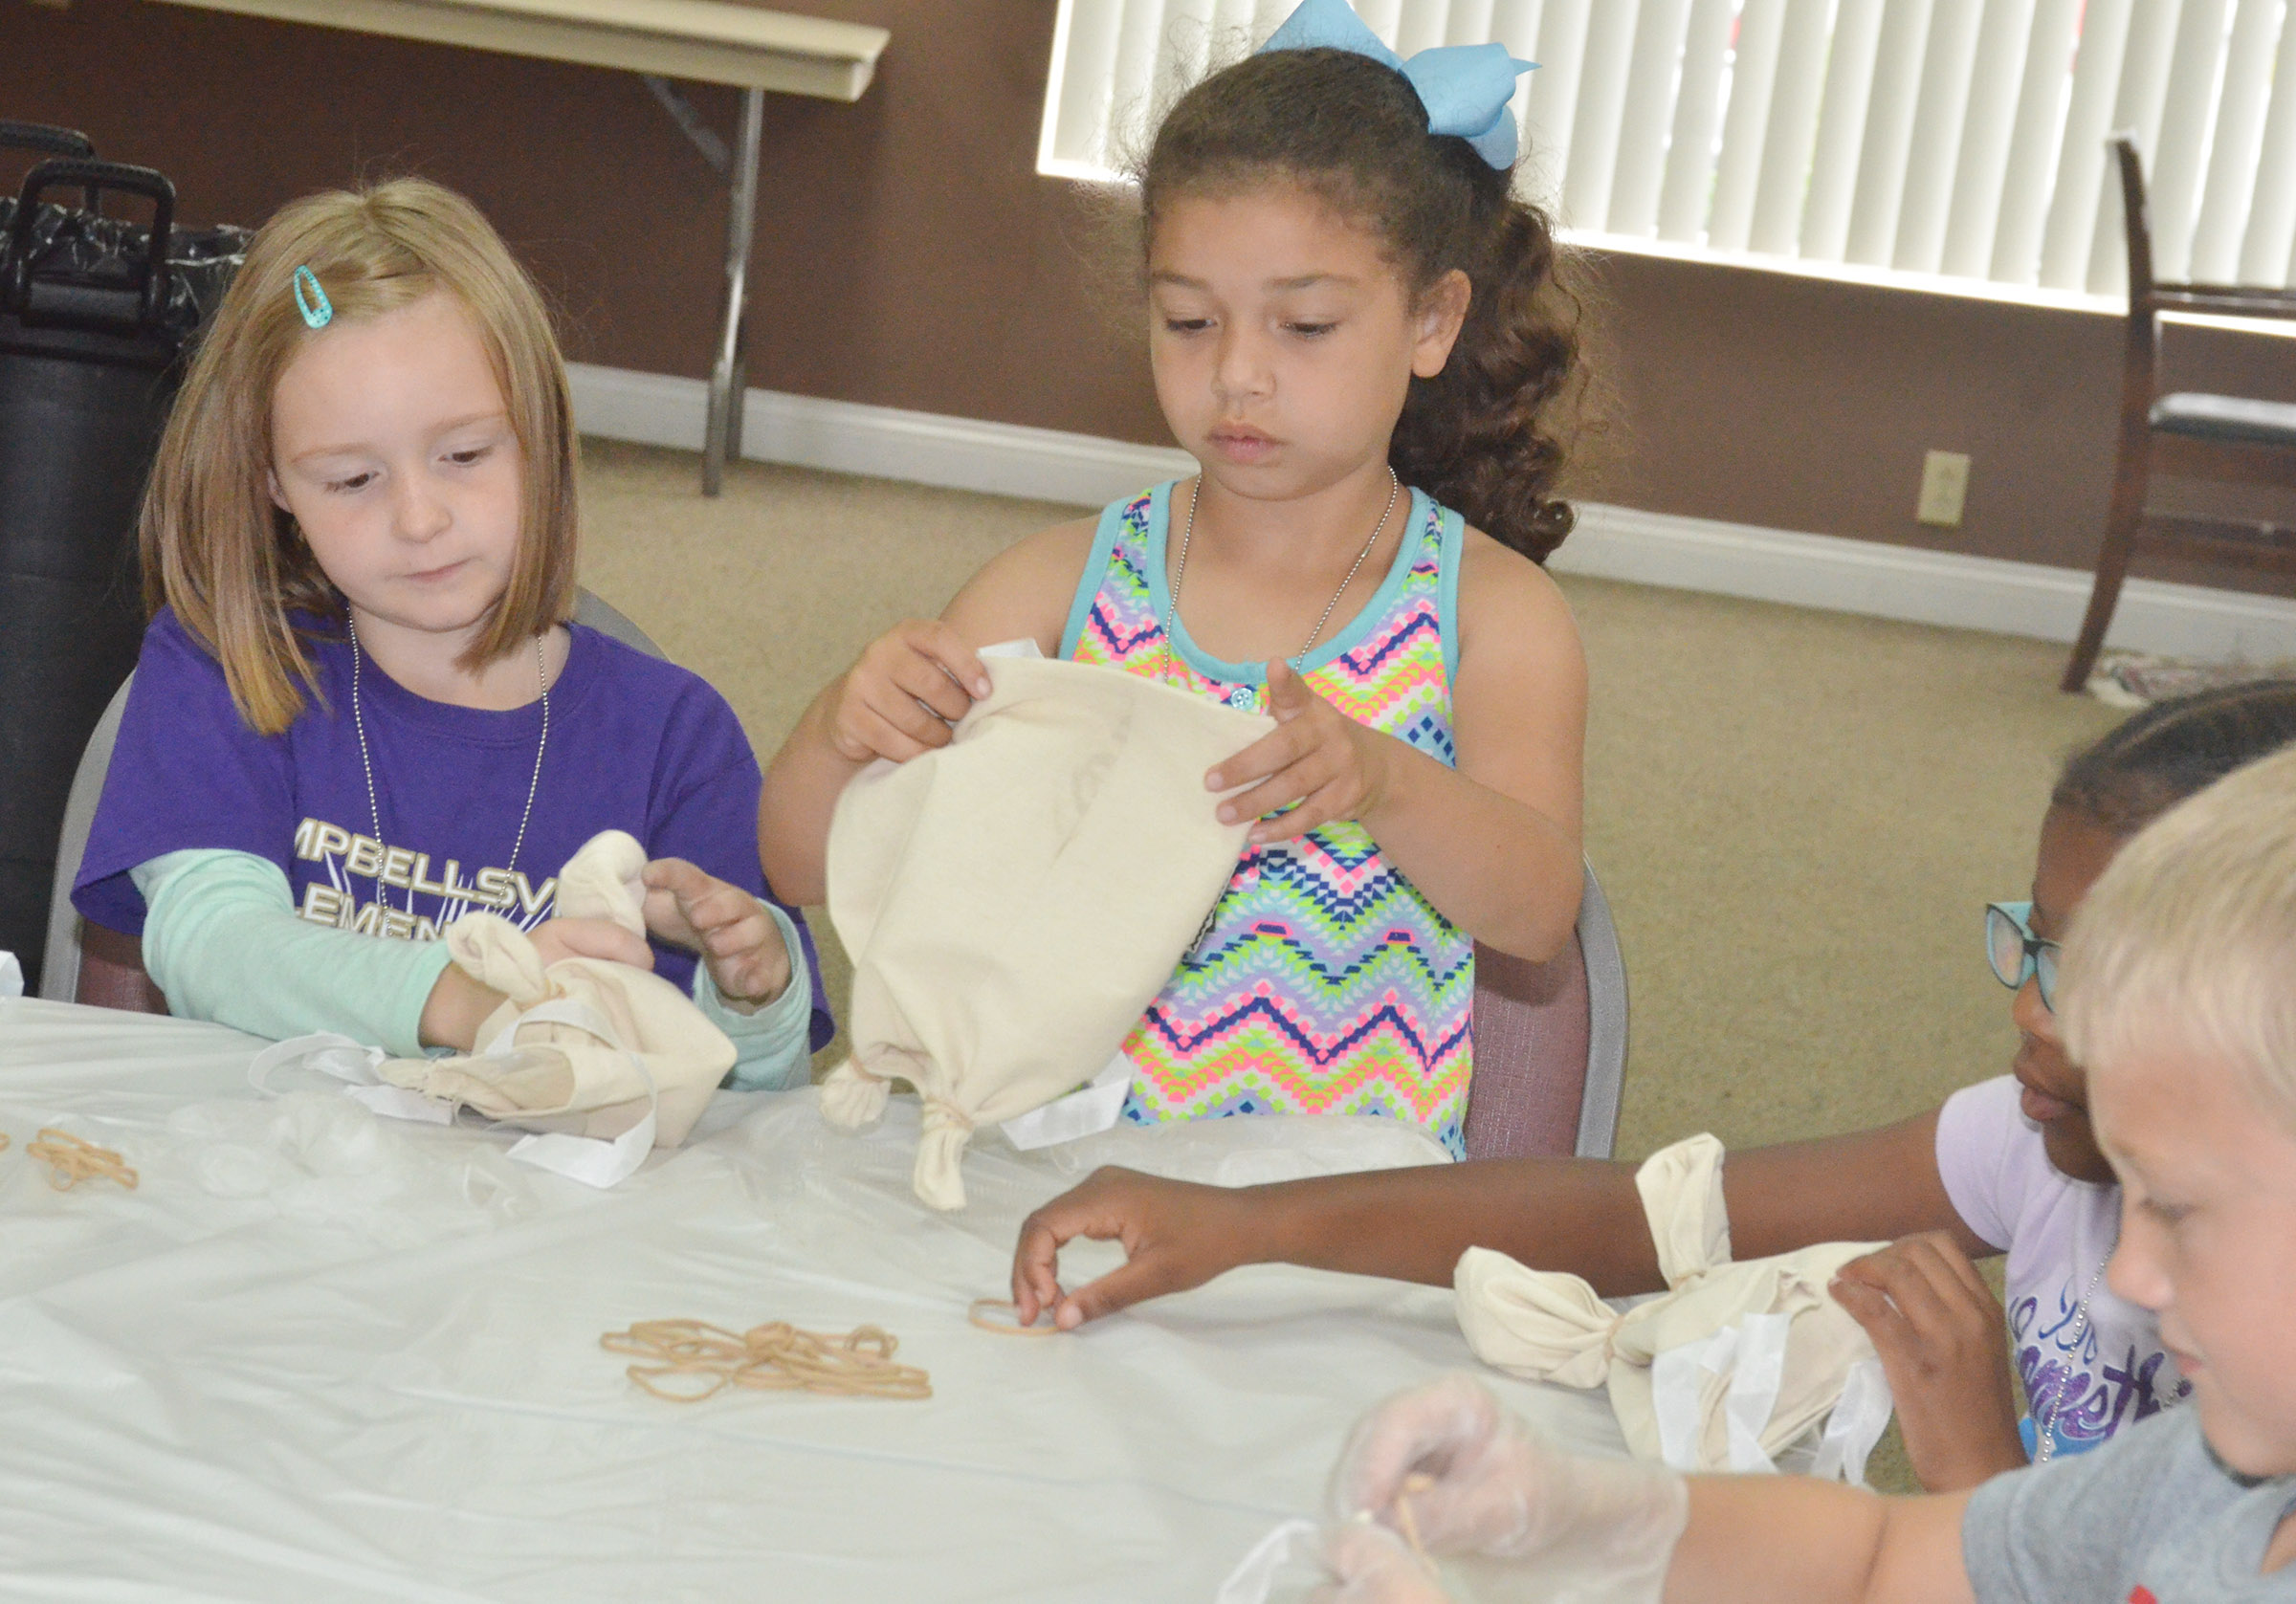 CES first-graders Gracie Murphy, at left, and Ammarissa Nunez tie knots in their bags so they can tie-dye them.